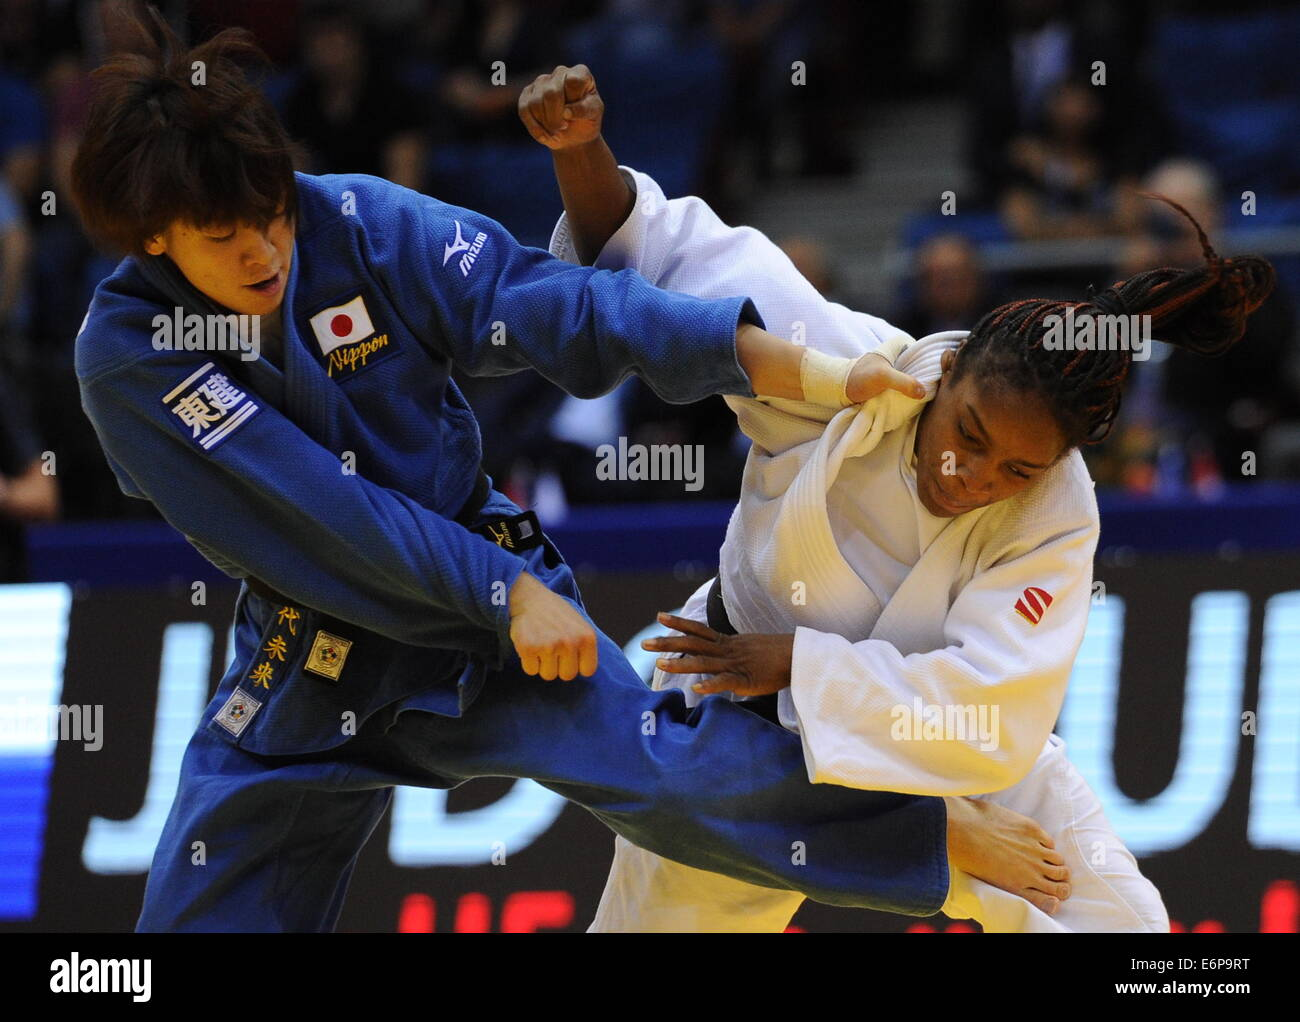 Chelyabinsk, Russia. 28th Aug, 2014. Miku Tashiro of Japan (L) competes with Edwige Gwend of Italy in their women's - Stock Image